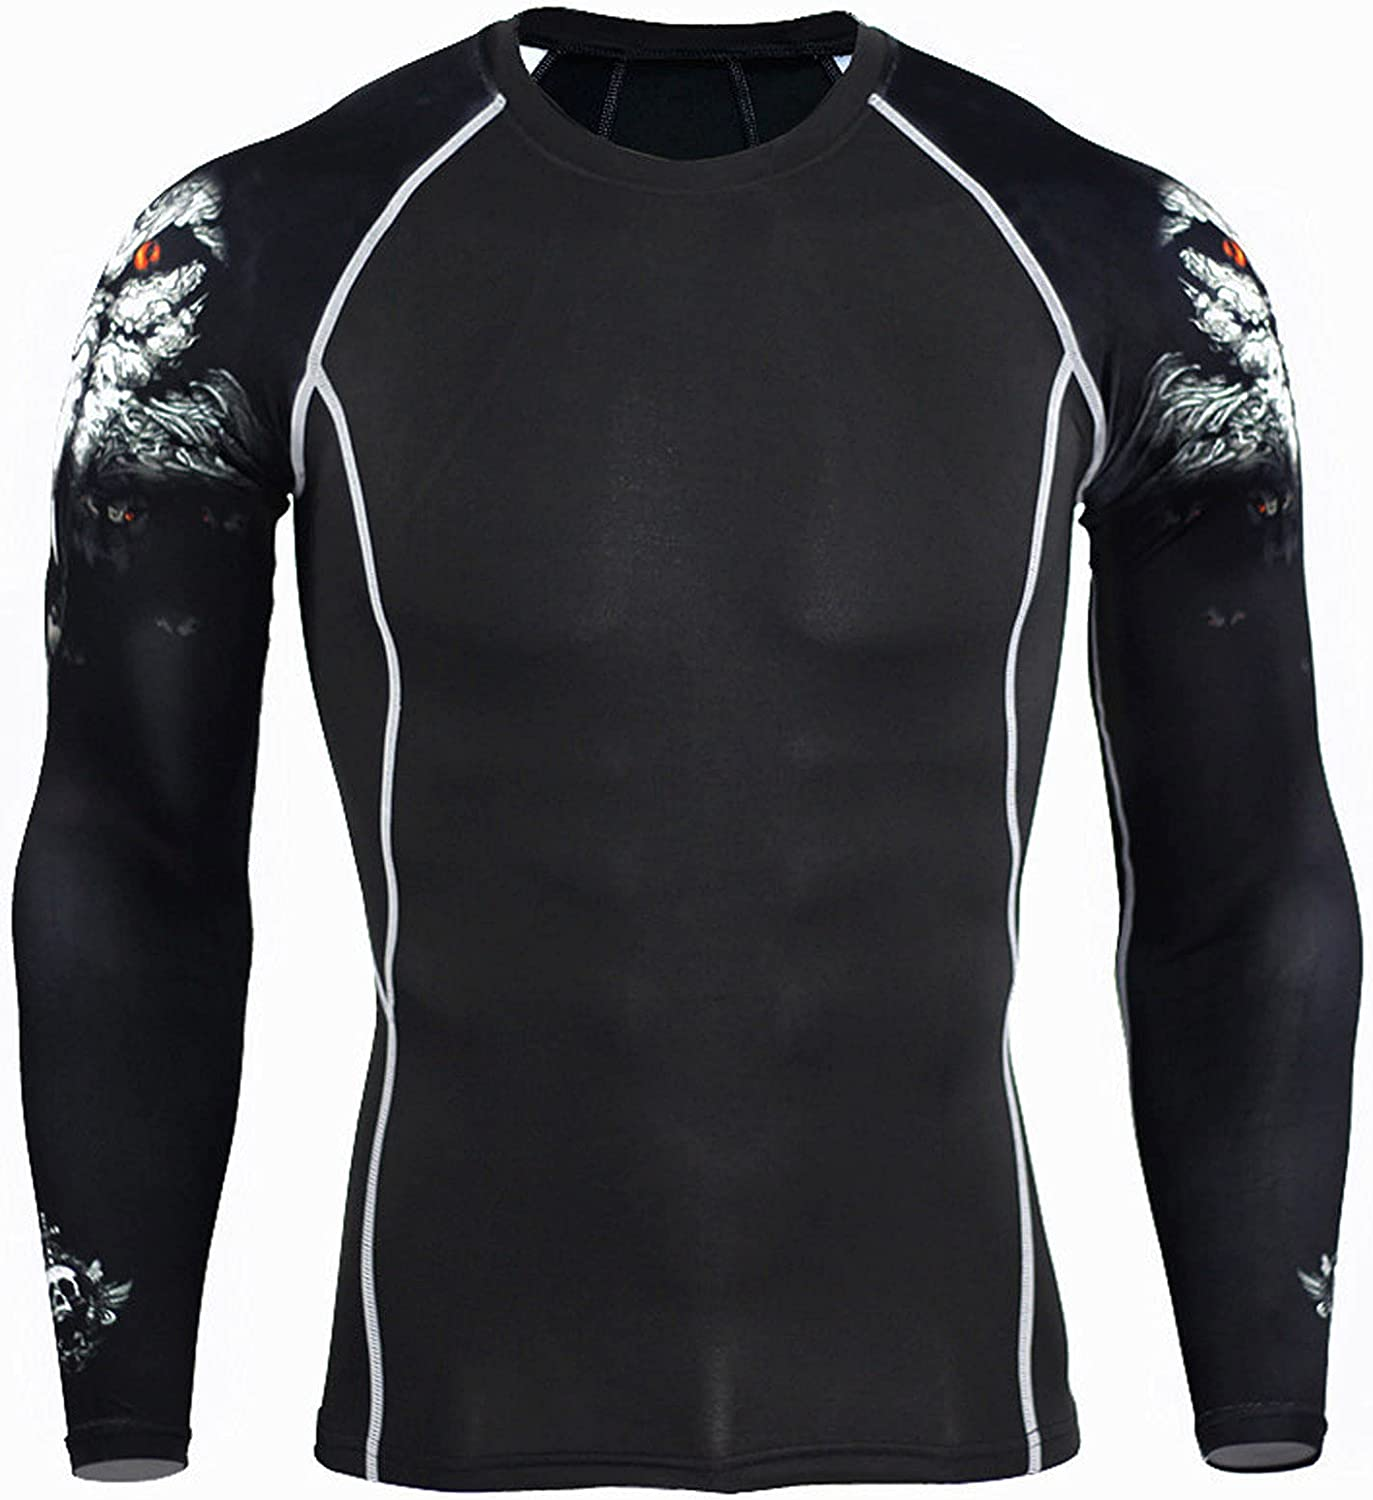 Men's Sports Running Deluxe Industry No. 1 Compression Set 3D Printed Cool on Desi Arm